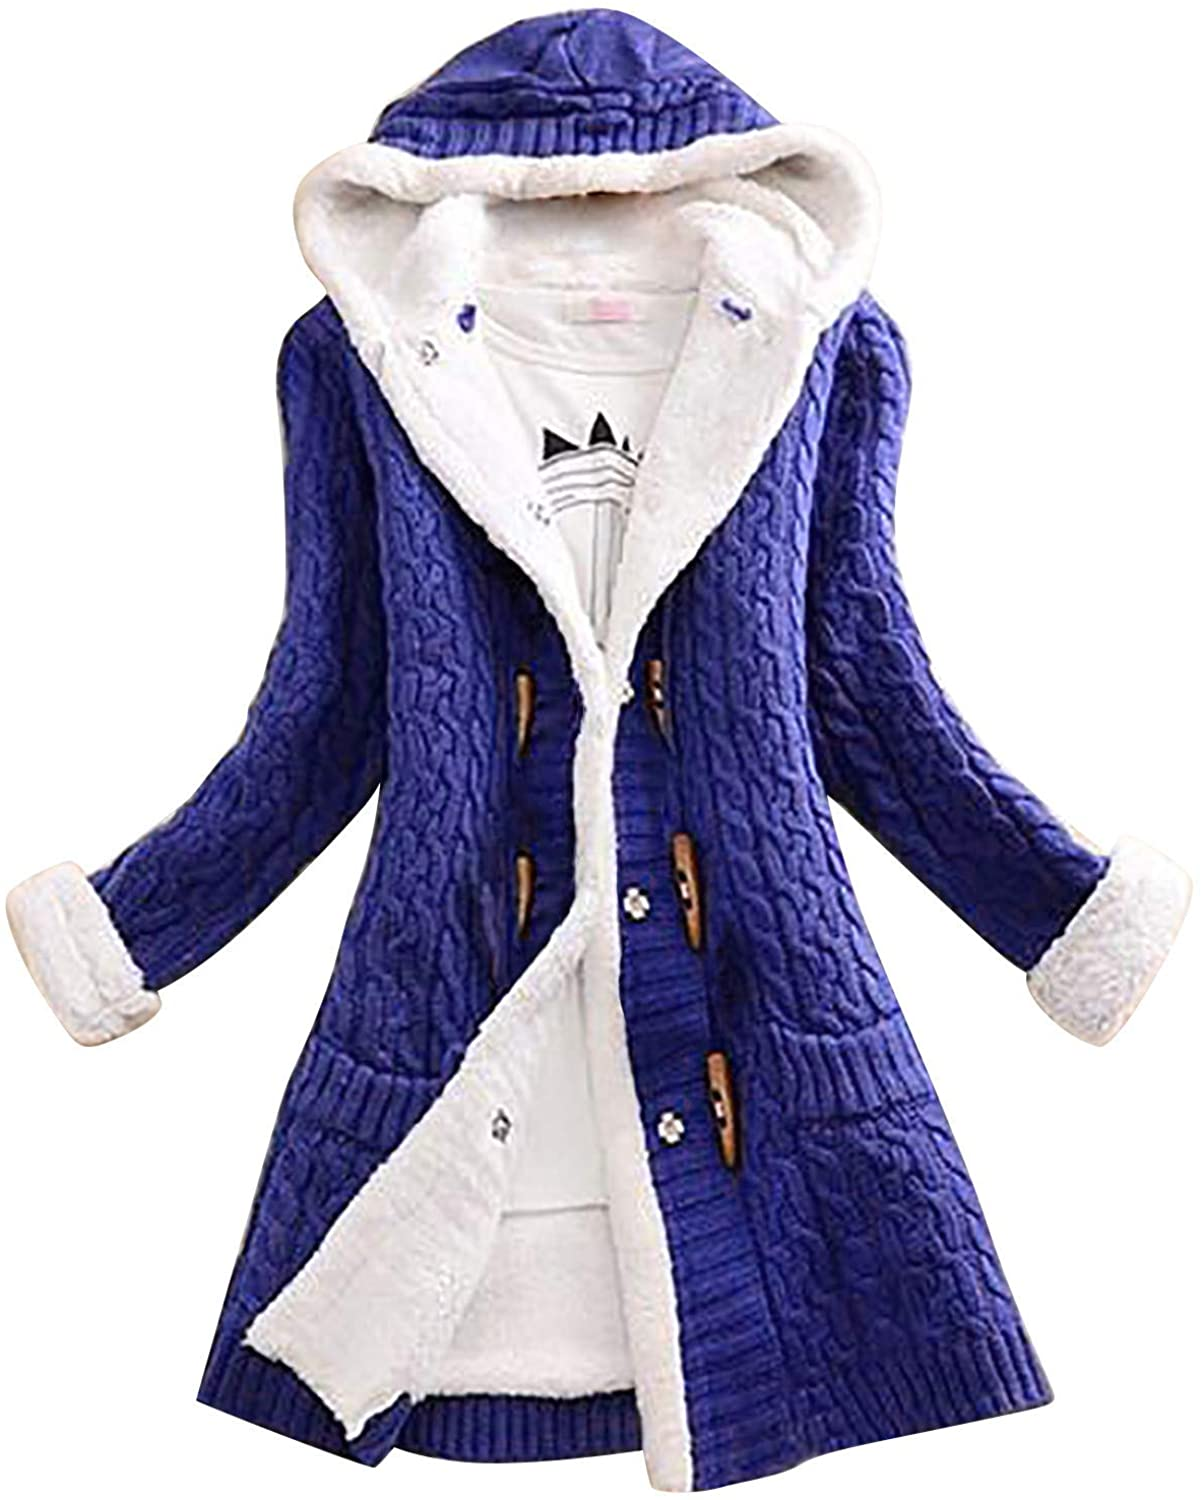 Plus Size Coat for Women Hooded Warm Jacket Horn Button Knit Cardigan Winter Mid Length Sweater with Pocket